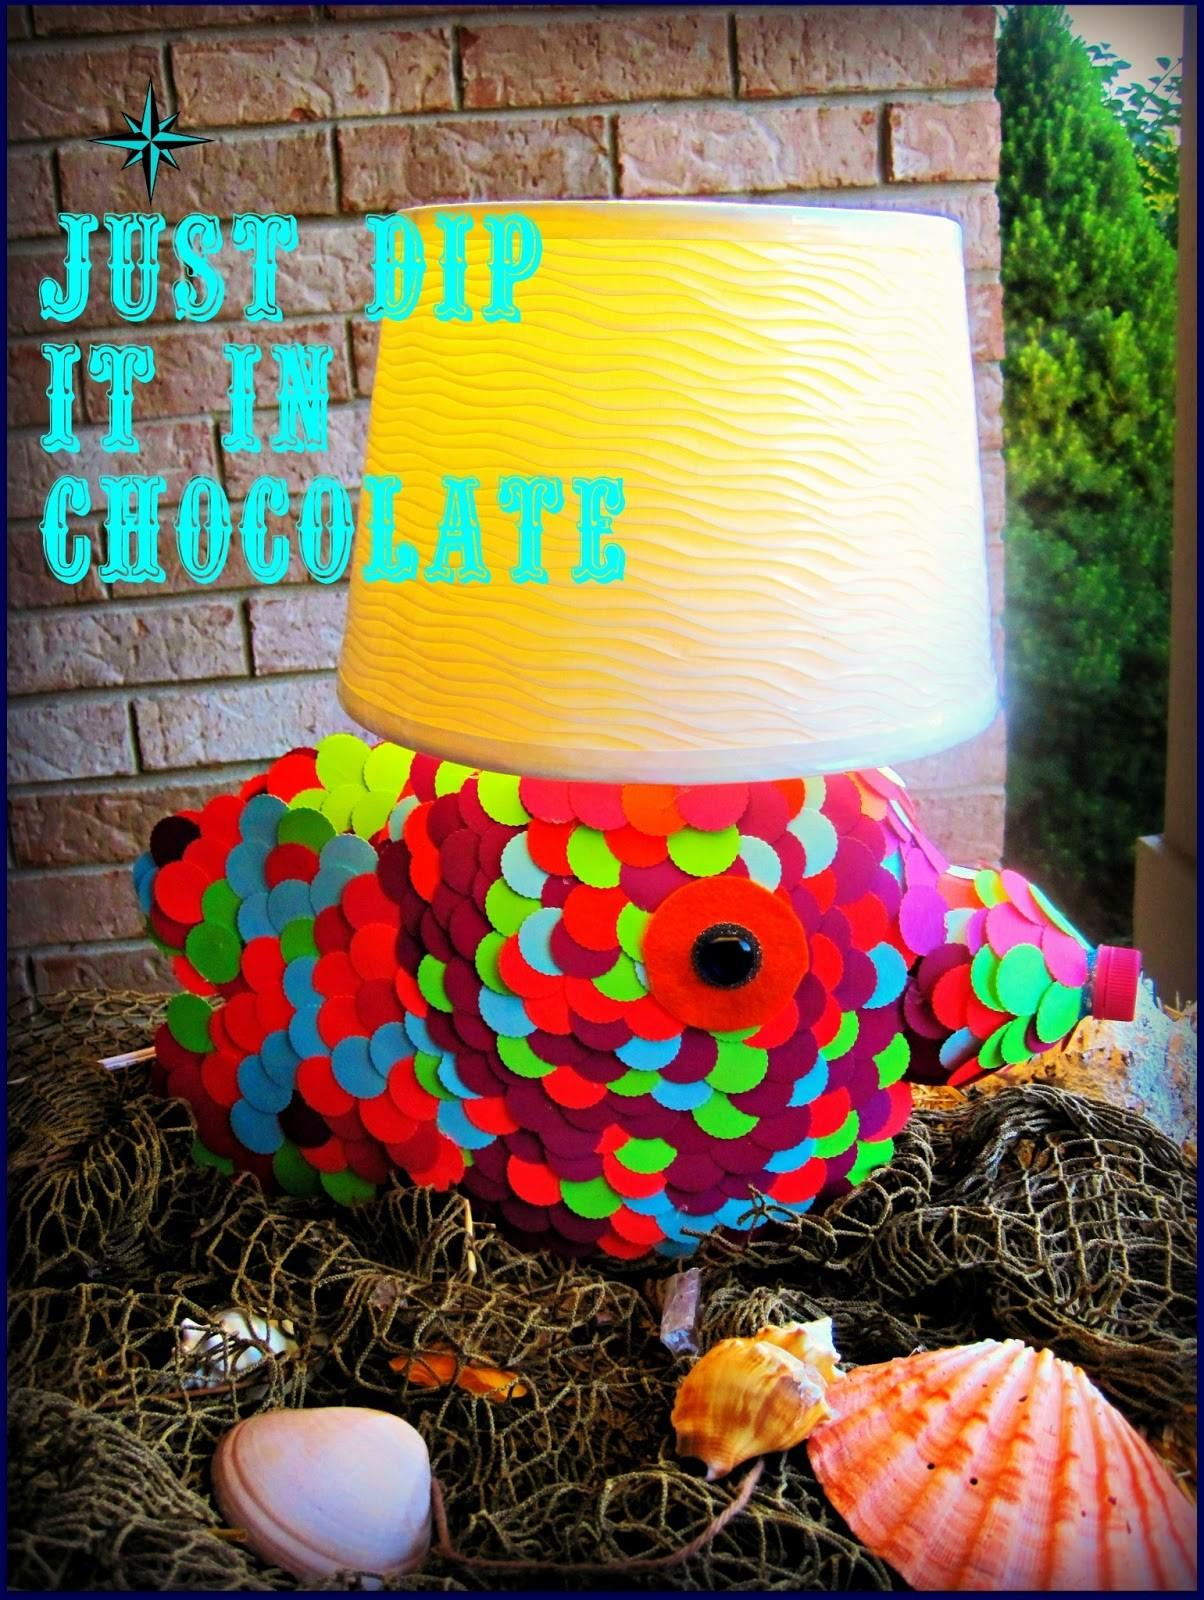 Just Dip Chocolate Recycled Diy Tide Pods Fish Lamp